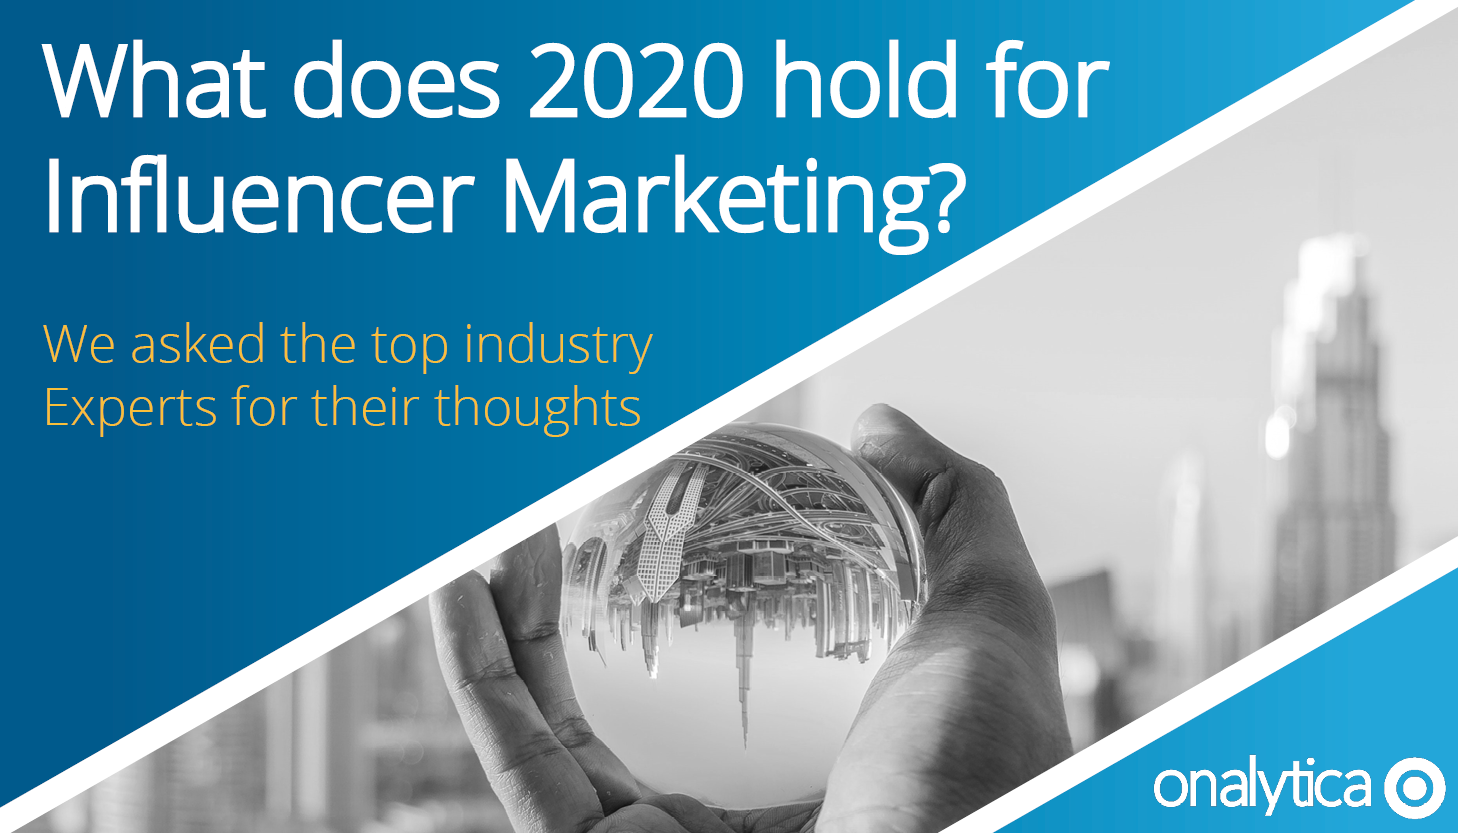 Expert Predictions on What 2020 Holds for Influencer Marketing